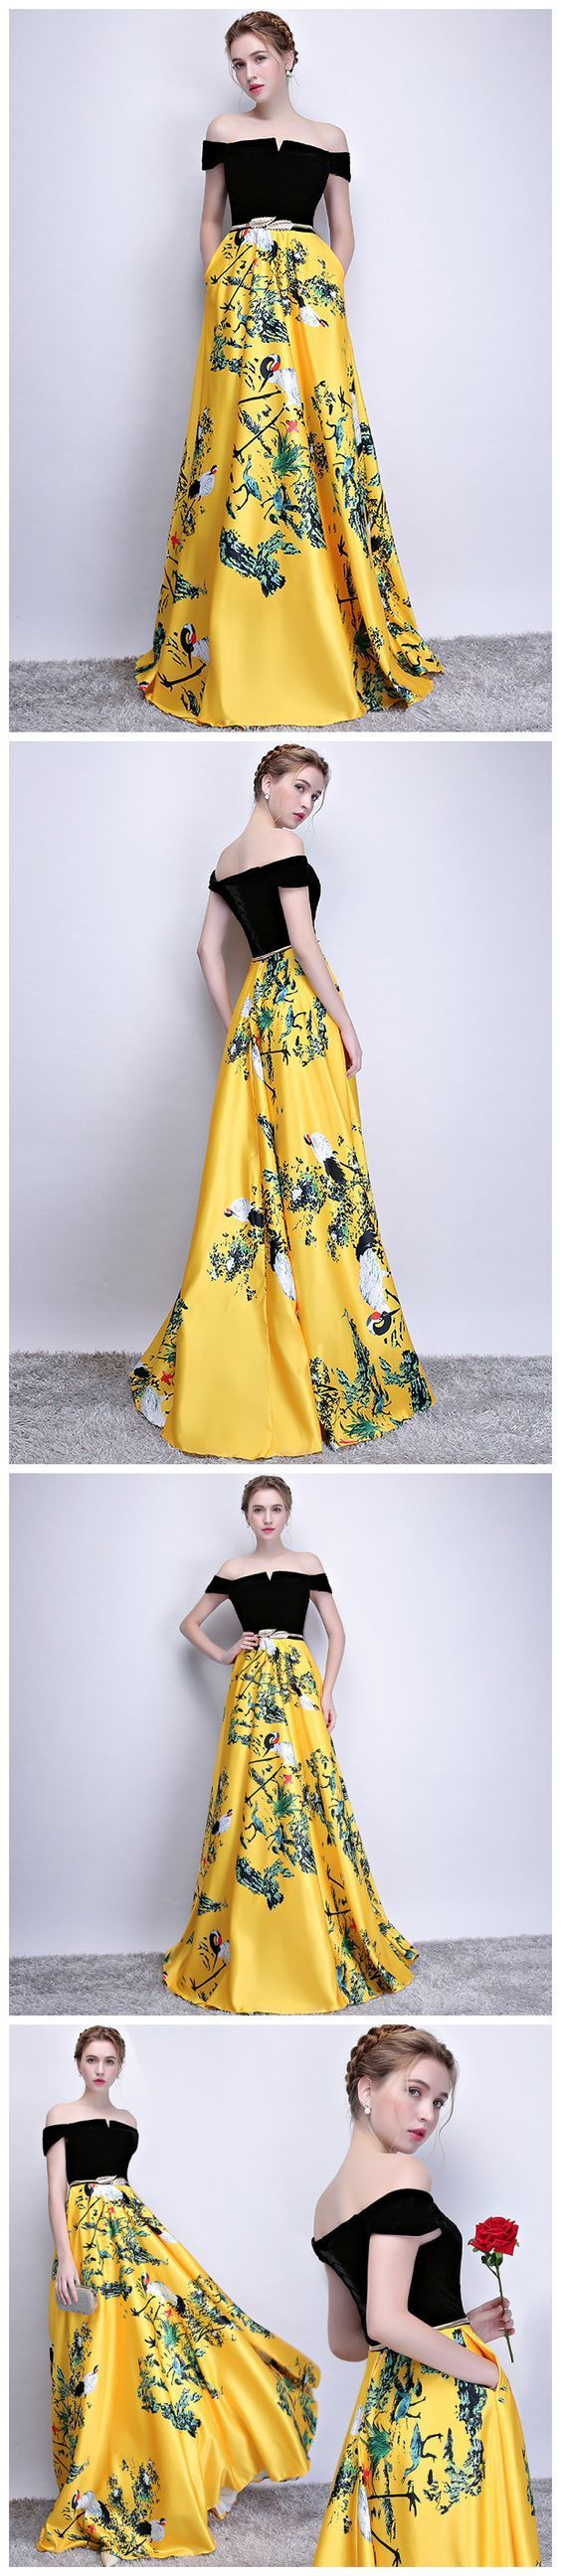 3813eb0cb97 Off-the-shoulder Prom Dress A-line Yellow Floral Satin Long Prom Dresses